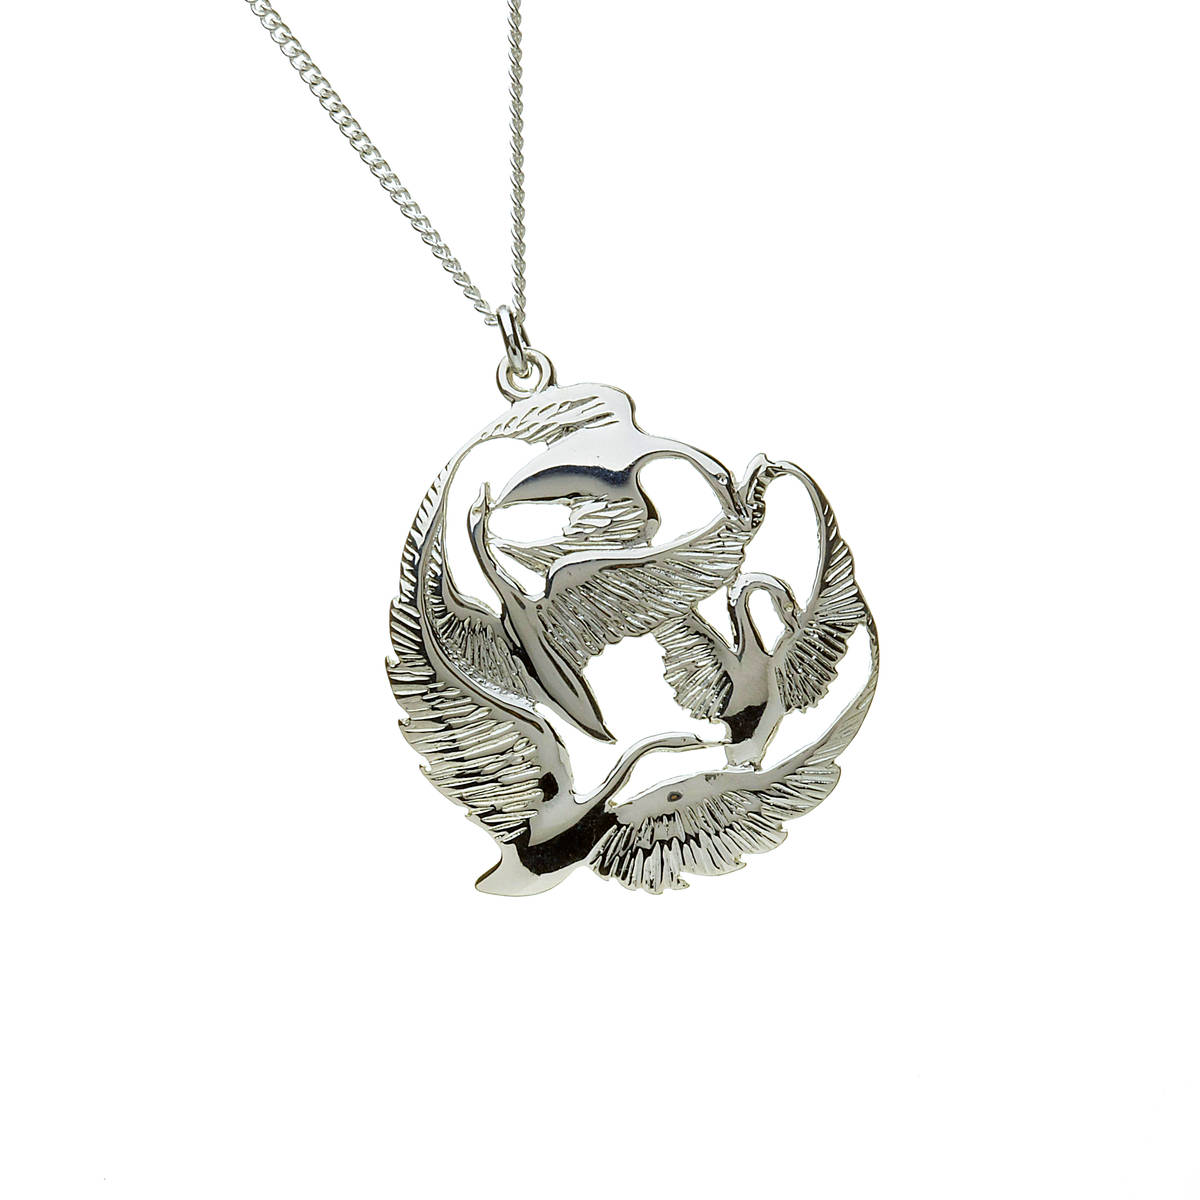 Silver Children of Lir pendant chained and boxed is beautifully styled and presented and you must read the story of the fable to understand the tragic beauty of their lives as described in our Lir section.